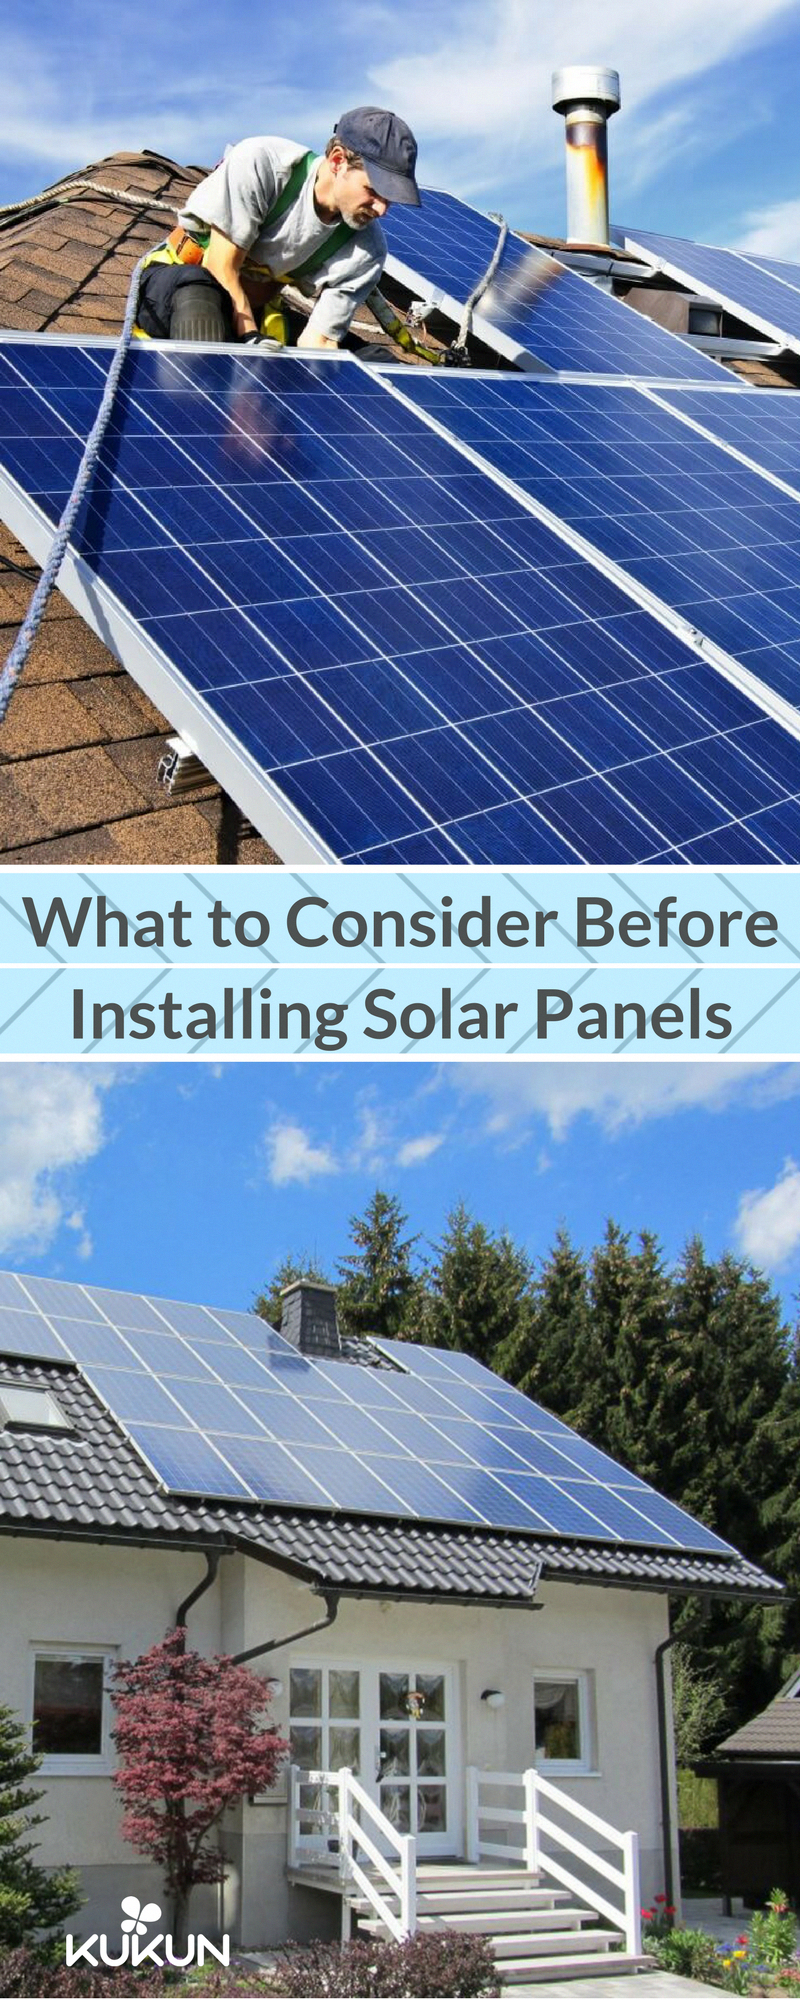 After Deciding To Make The Transition To Clean Abundant Solar Energy You Ll Need To Consider These Tips Before Installing In 2020 Solar Panels Solar Panel Installation Solar Energy Panels